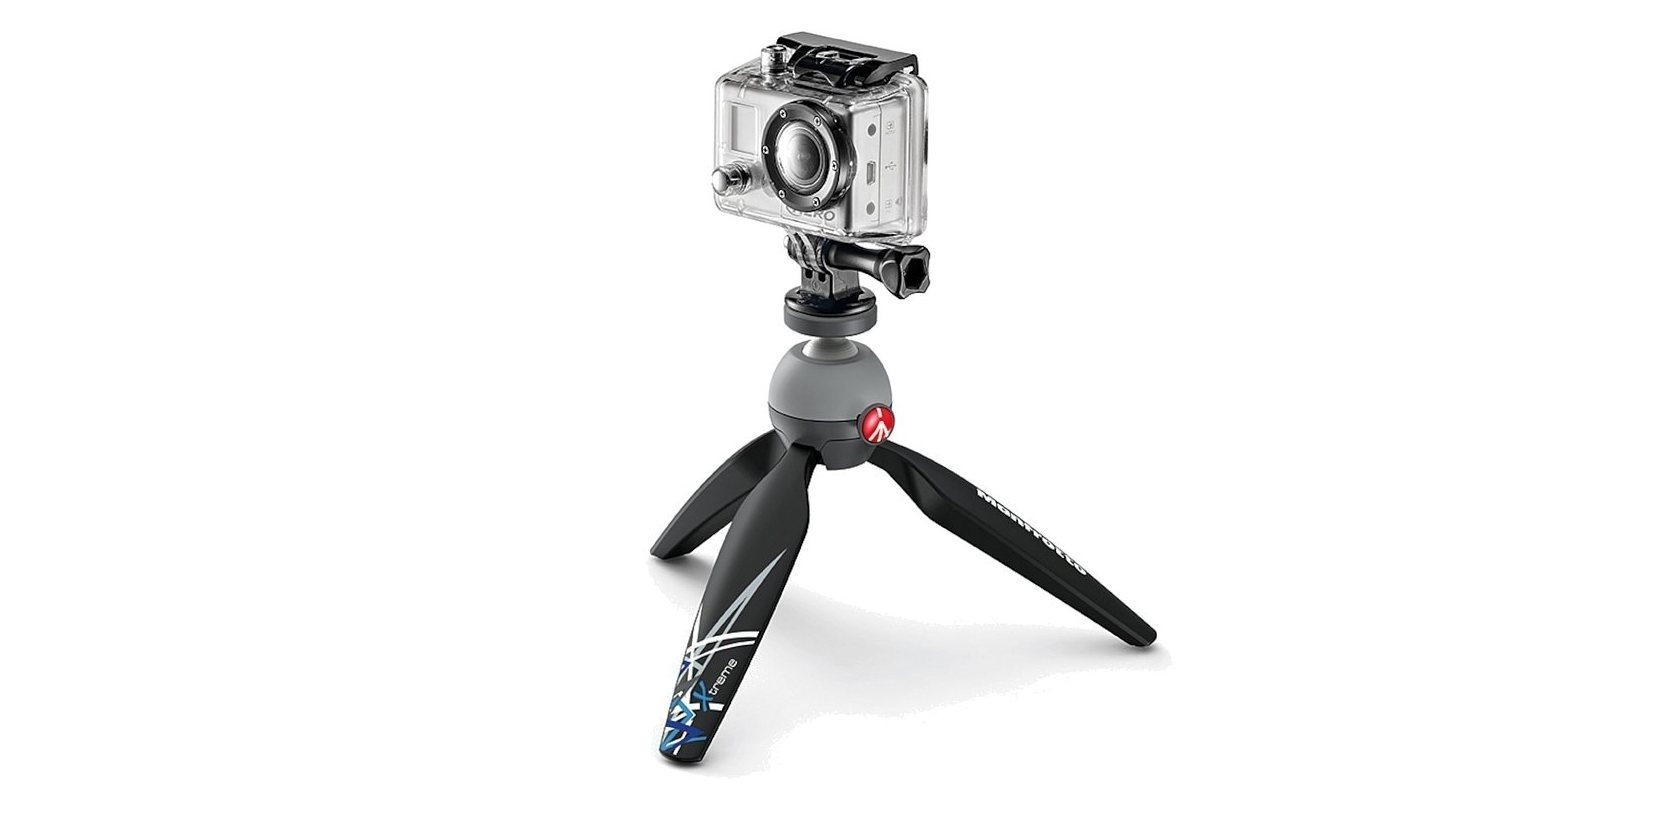 Штатив Manfrotto для экшн-камер